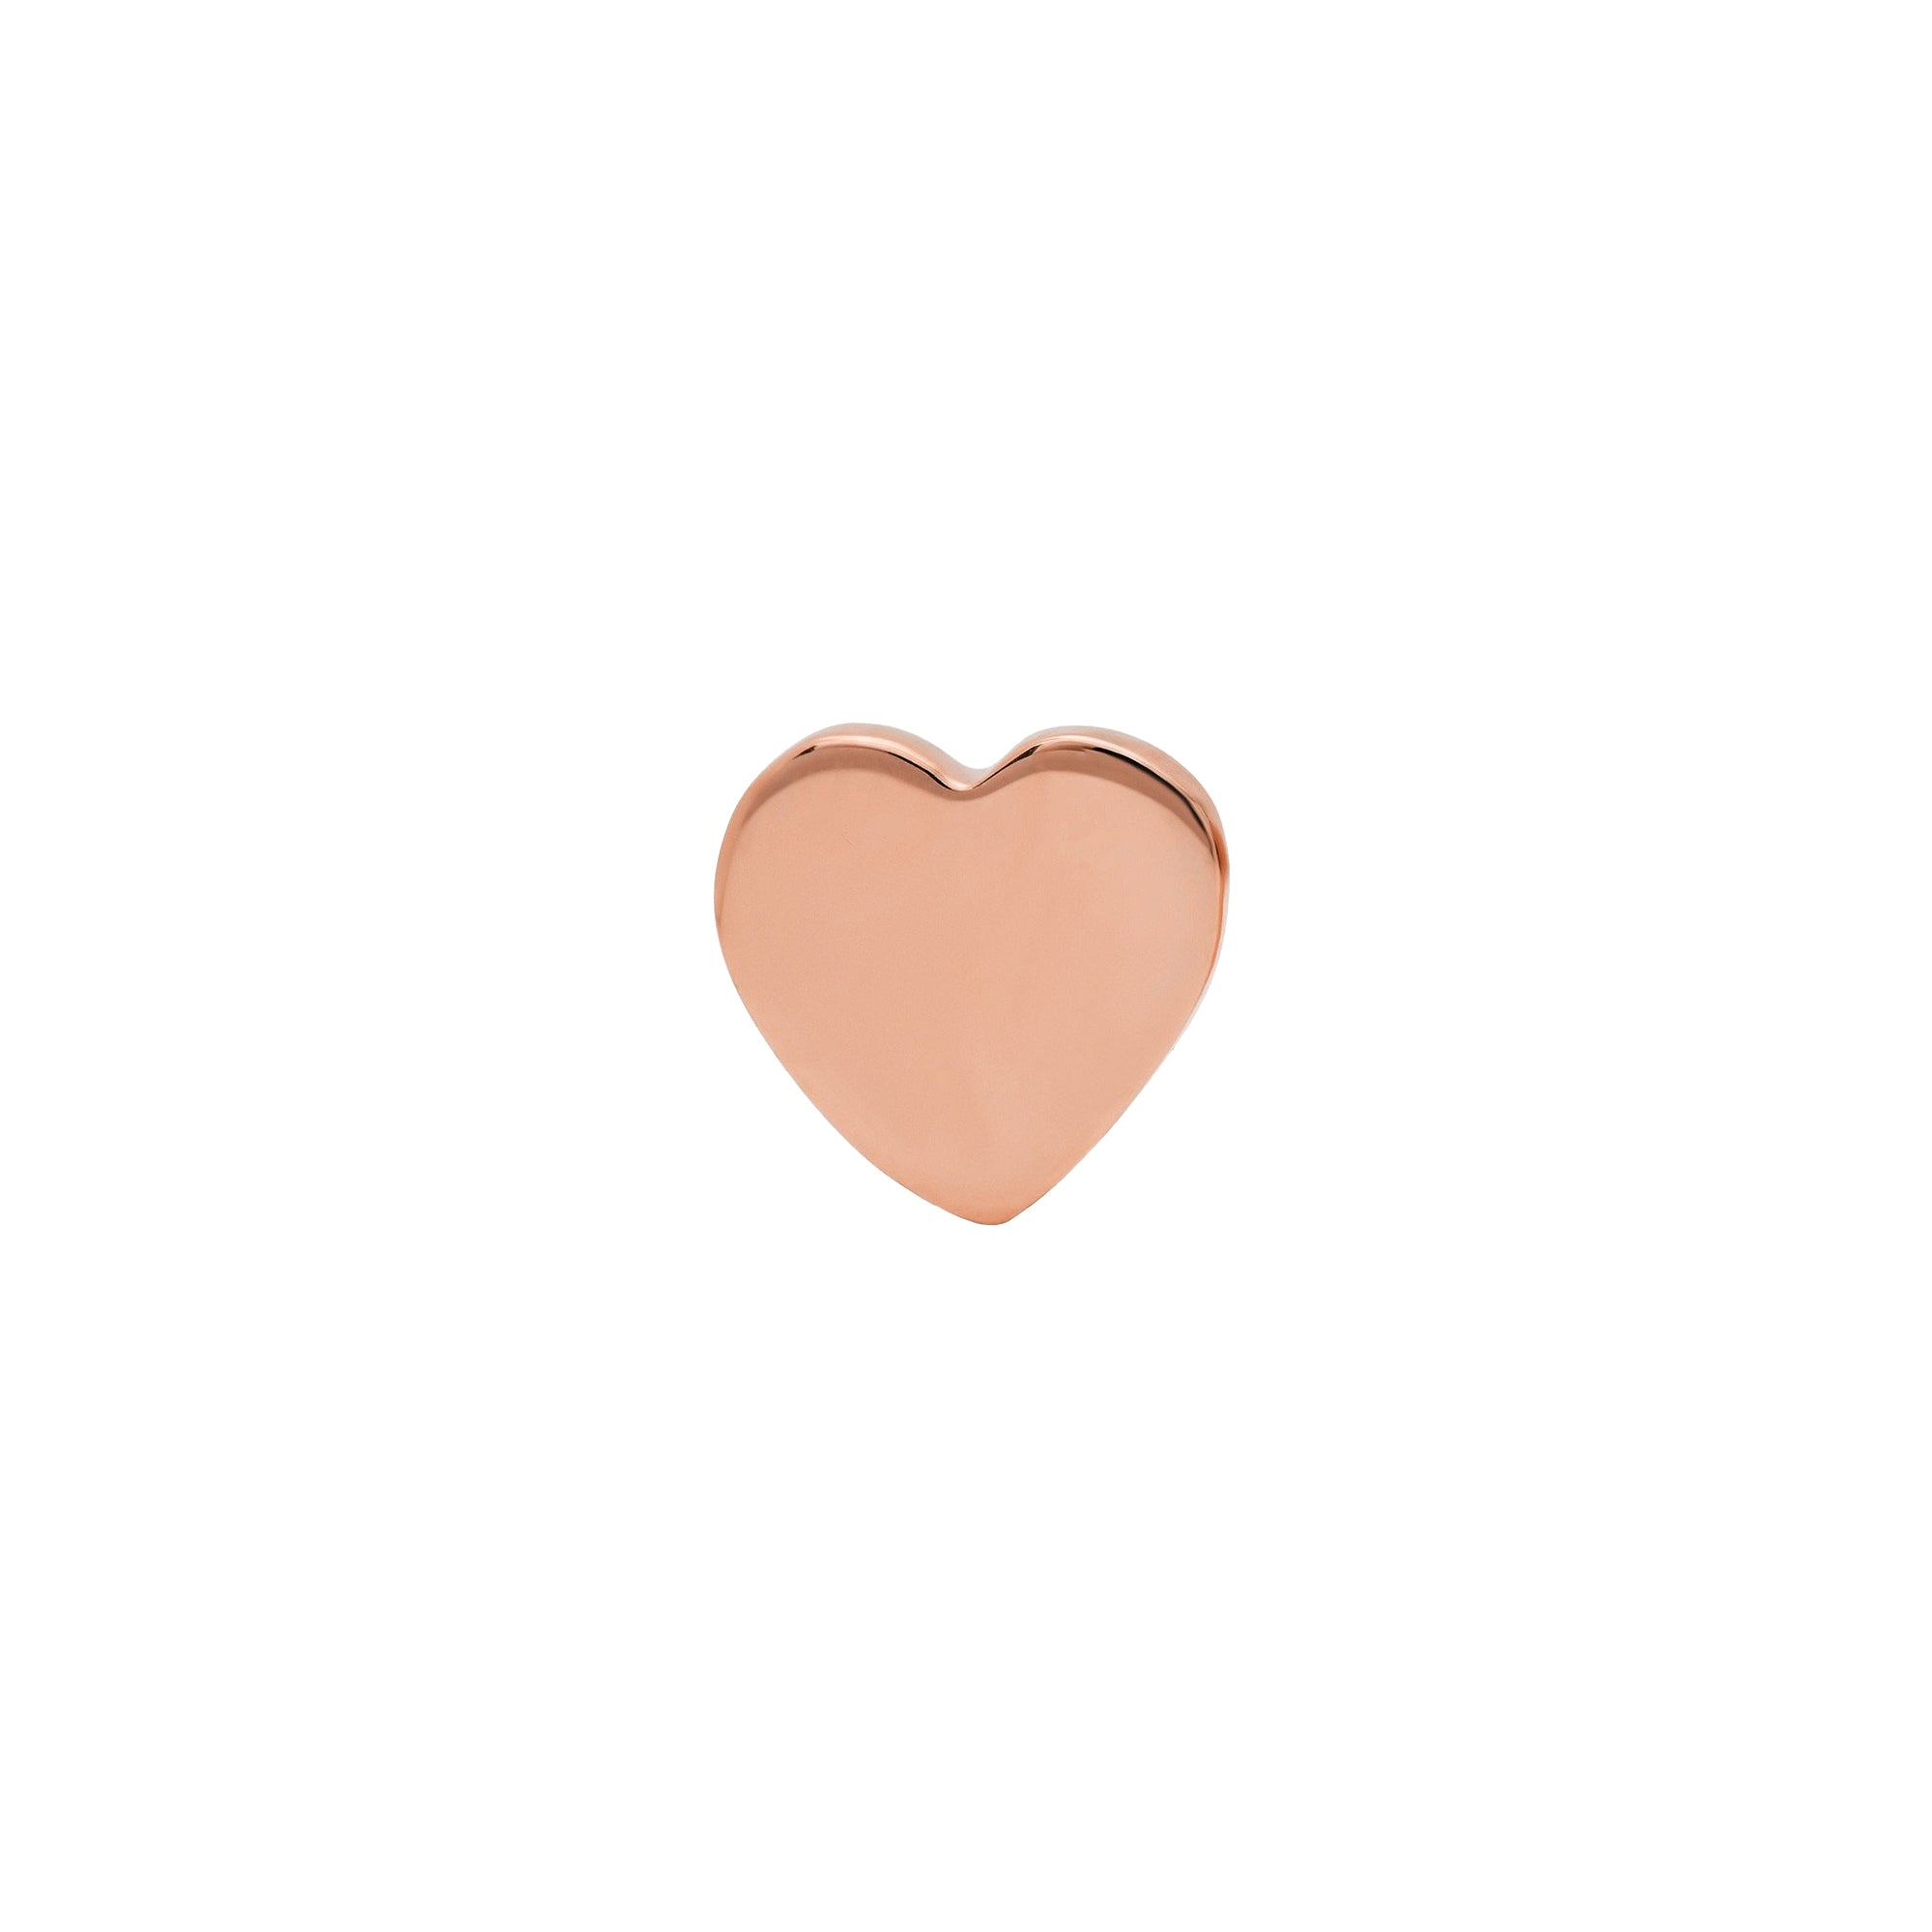 Gold Heart Stud by Established for Broken English Jewelry